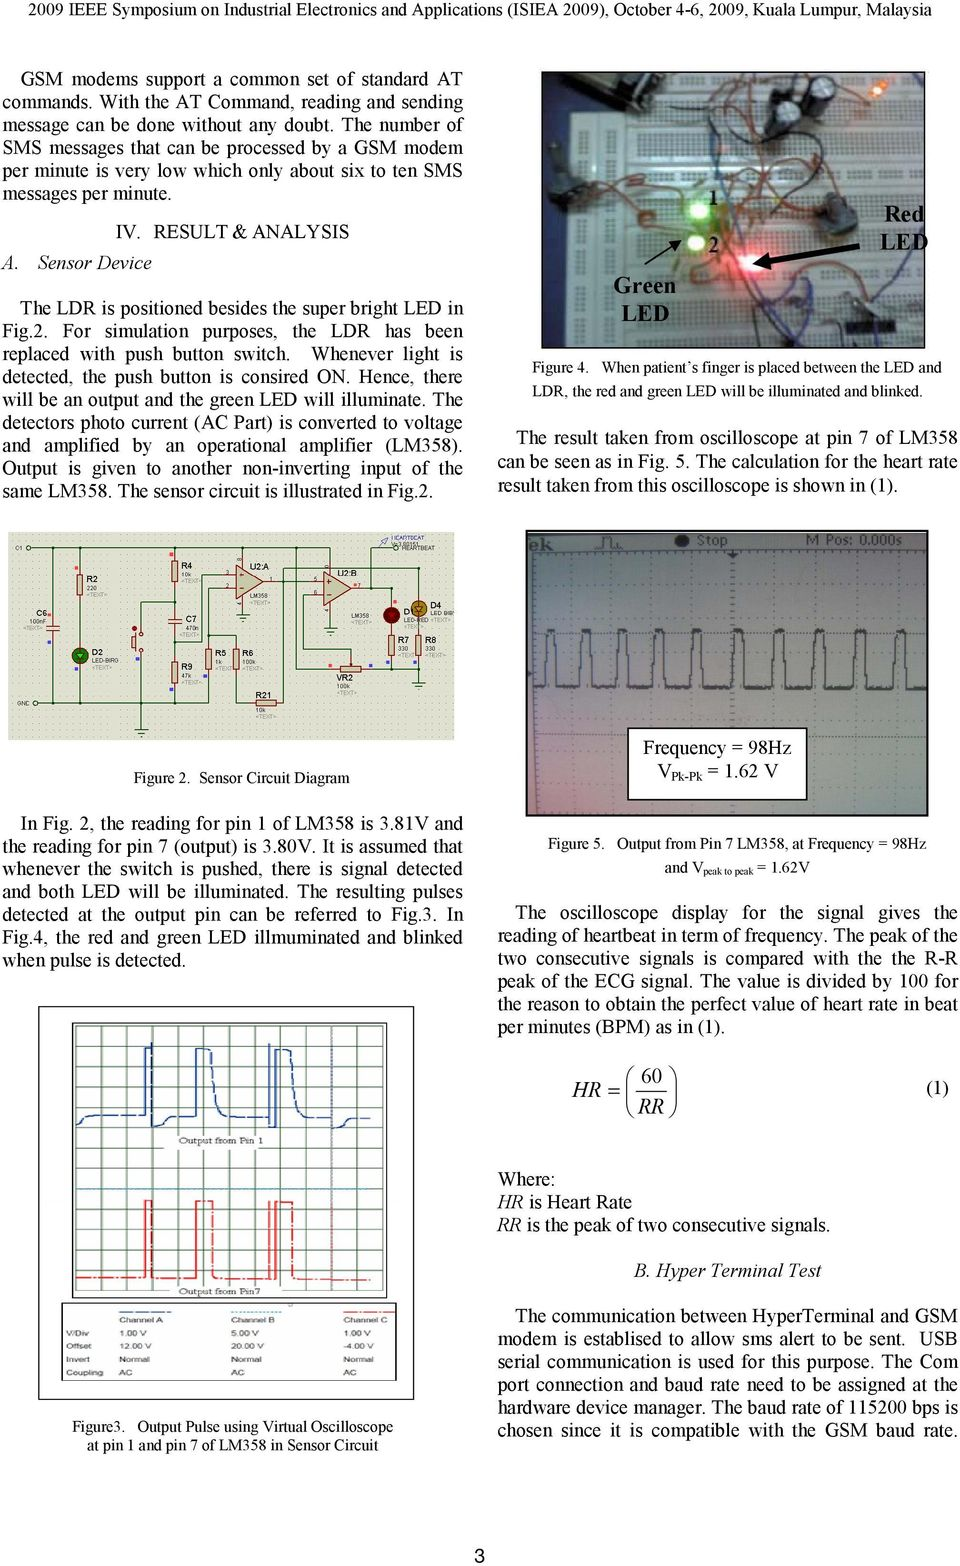 Heartbeat Monitoring Alert Via Sms Pdf Electronic Devices And Circuits By Rajiv Tiwari Sensor Device The Ldr Is Positioned Besides Super Bright Led In Fig2